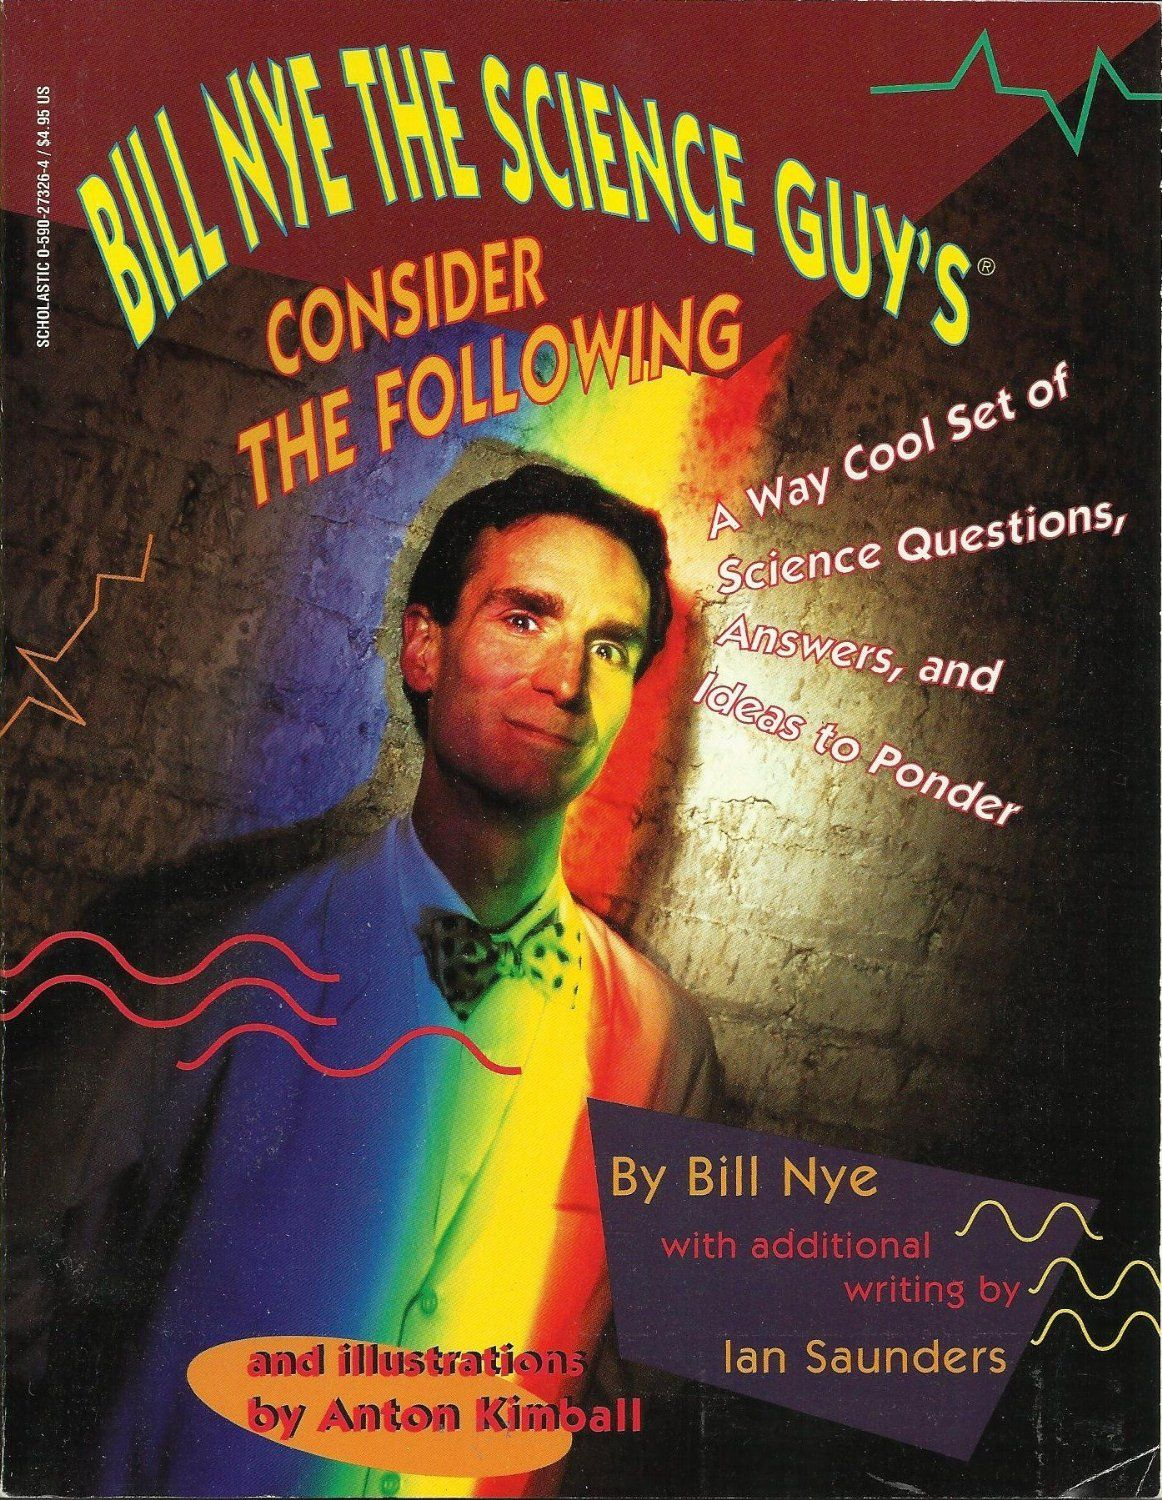 Bill Nye The Science Guy Consider The Following A Way